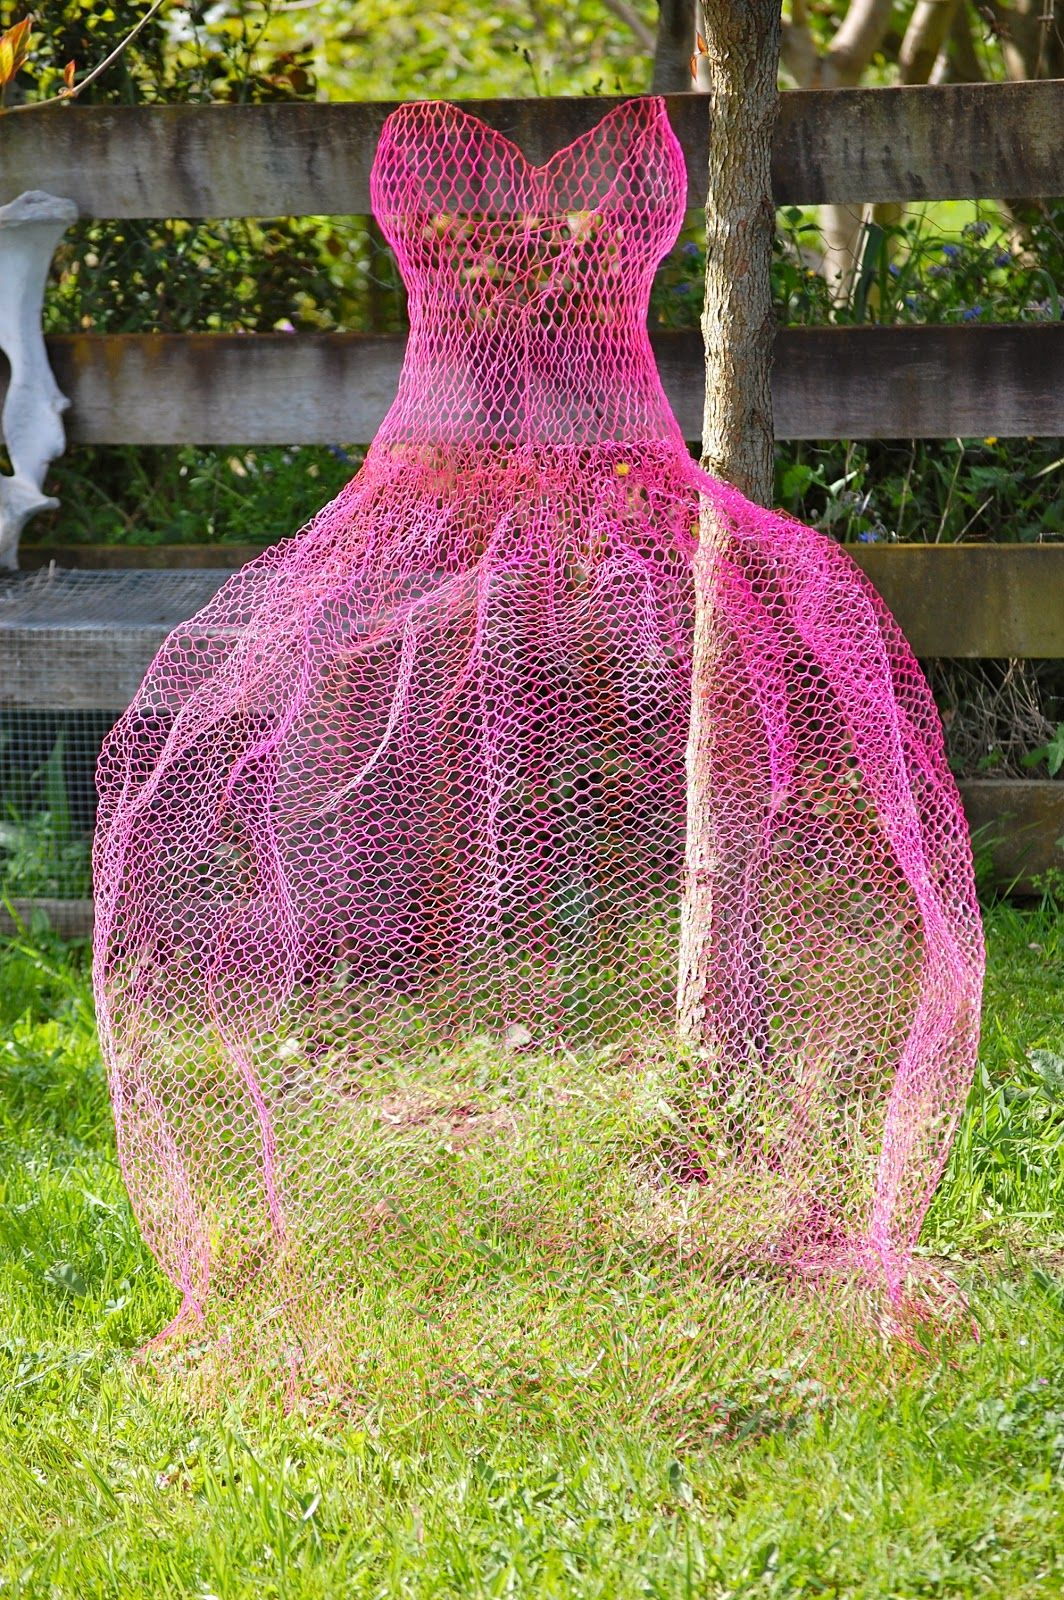 wedding dresses made from wire - Google Search | wire crafts